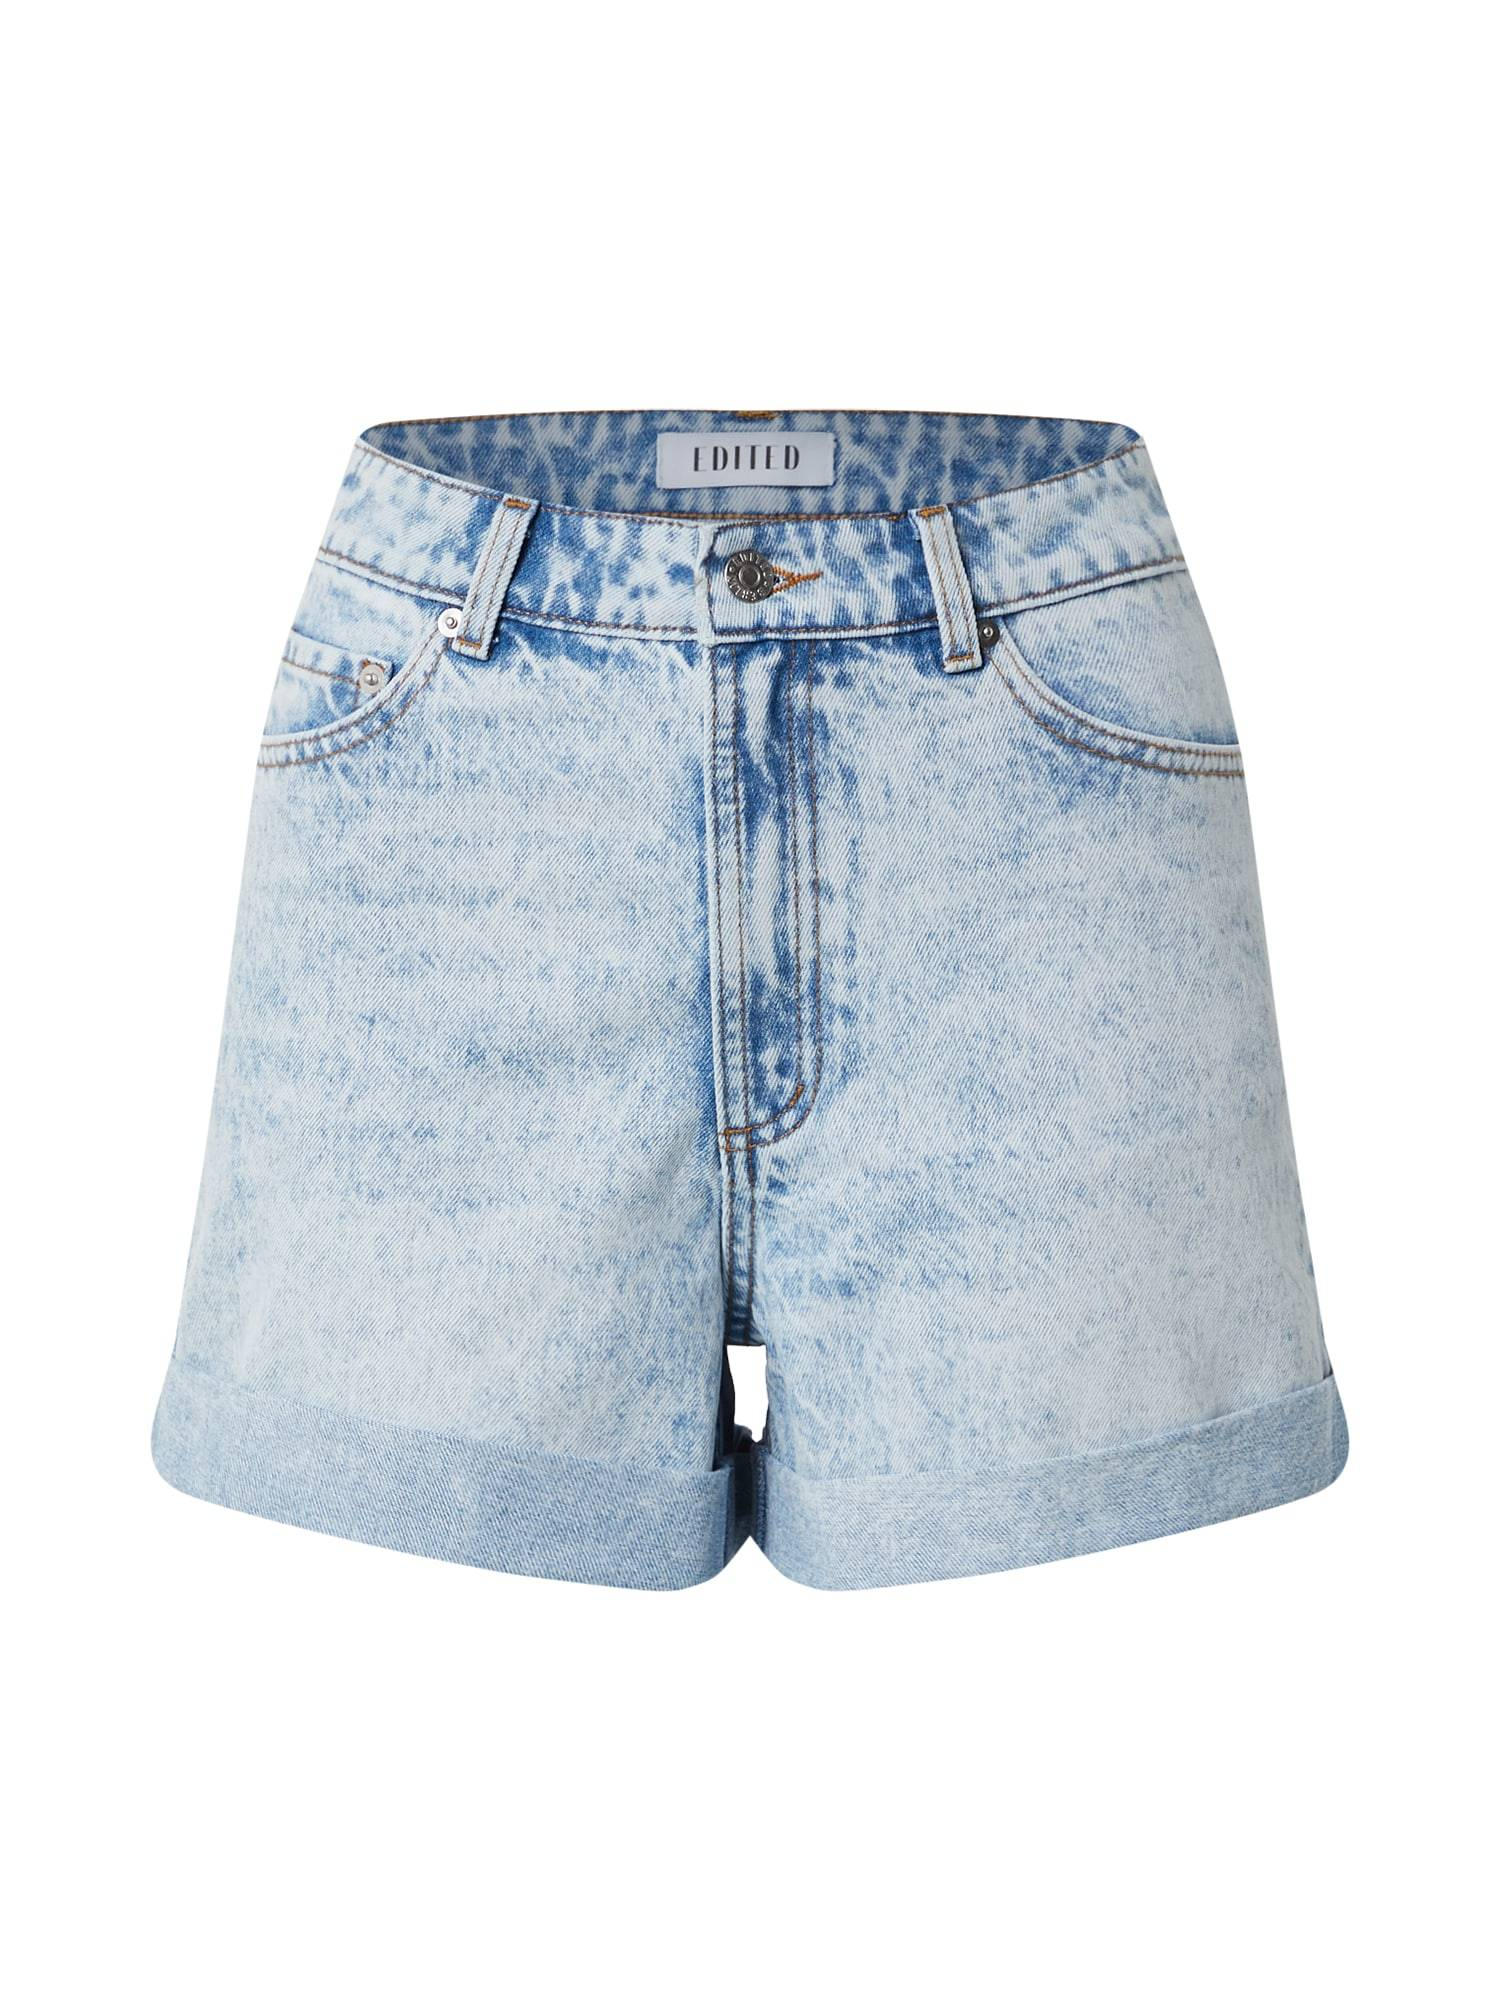 EDITED Jean 'Amy'  - Bleu - Taille: 40 - female